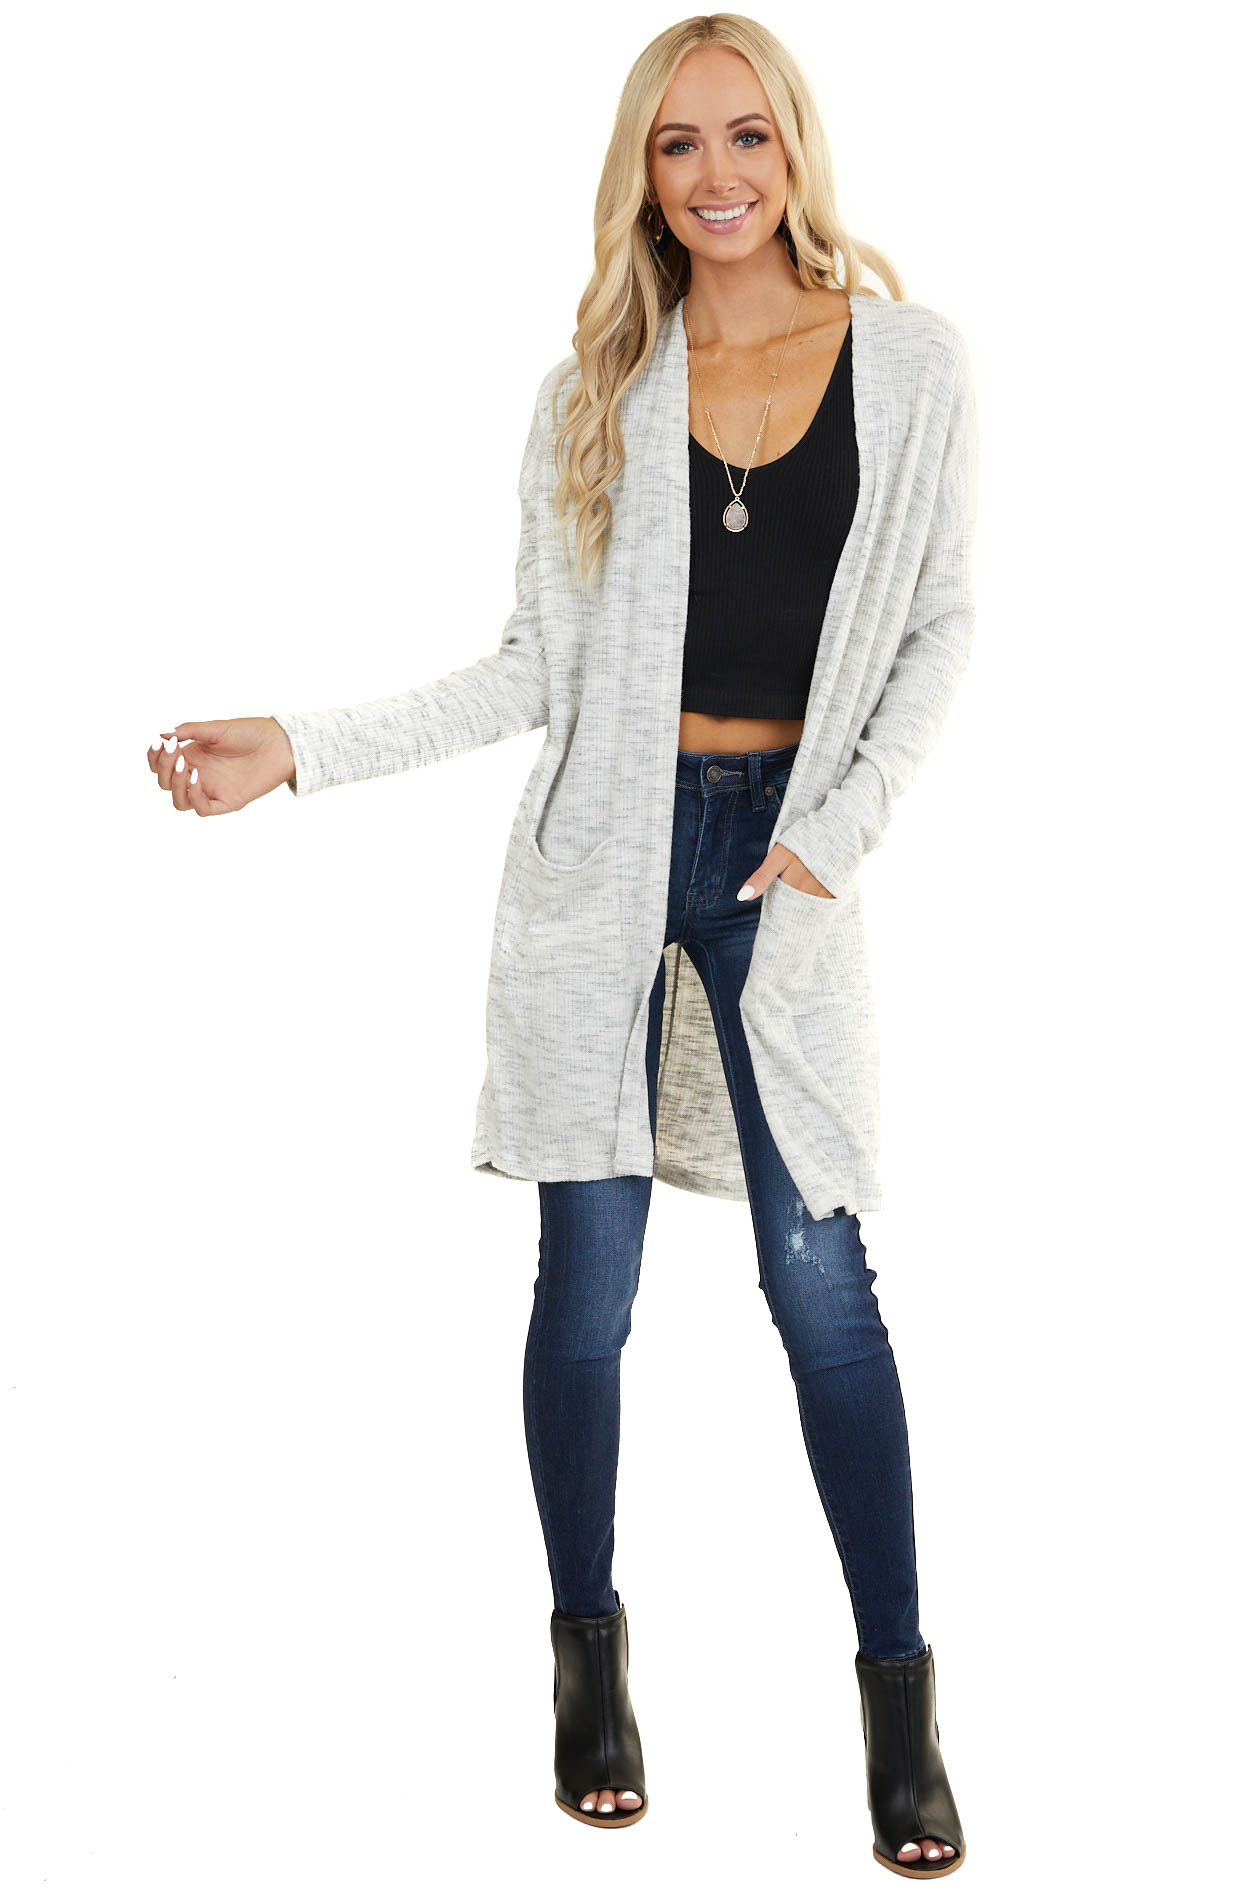 Heathered Grey and Ivory Long Sleeve Cardigan with Pockets